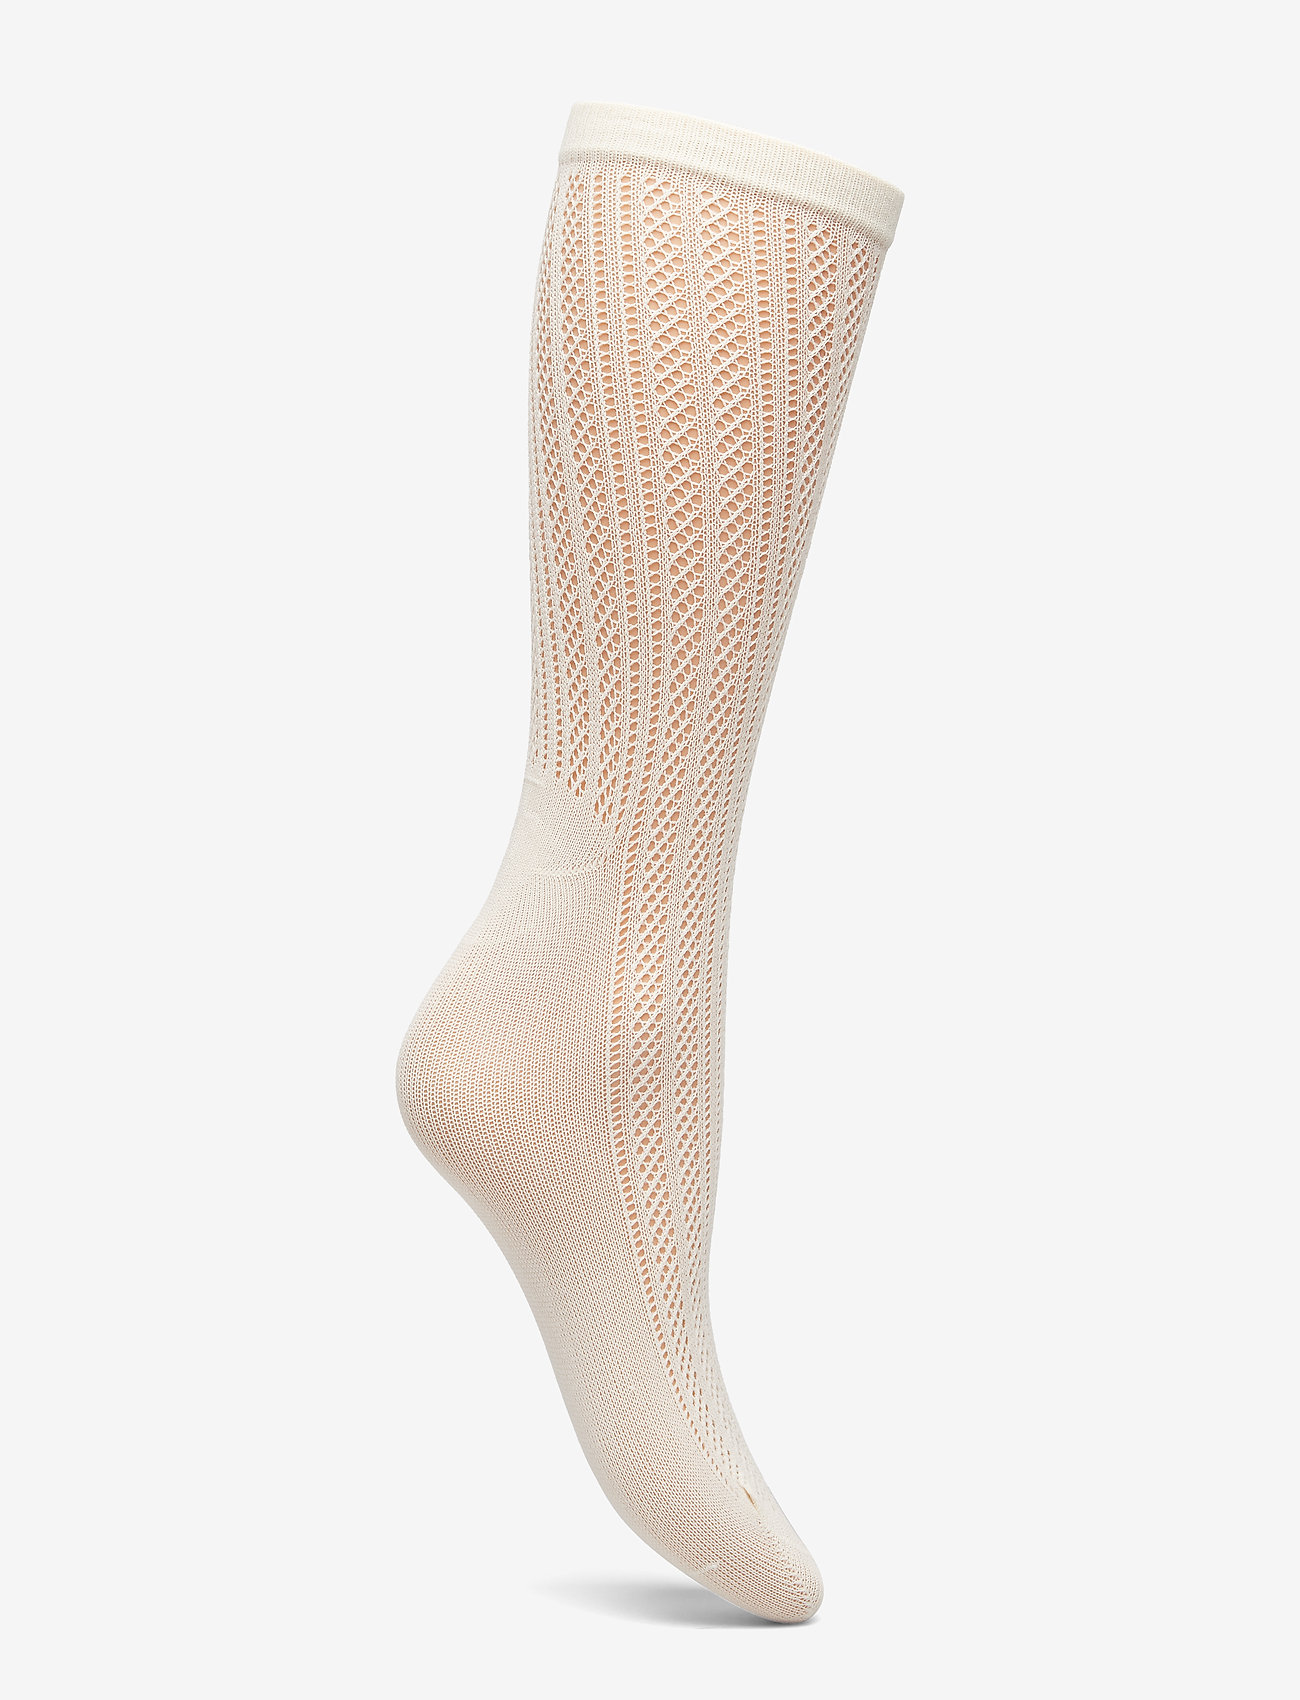 Swedish Stockings - Klara knit sock - socken - ivory - 1